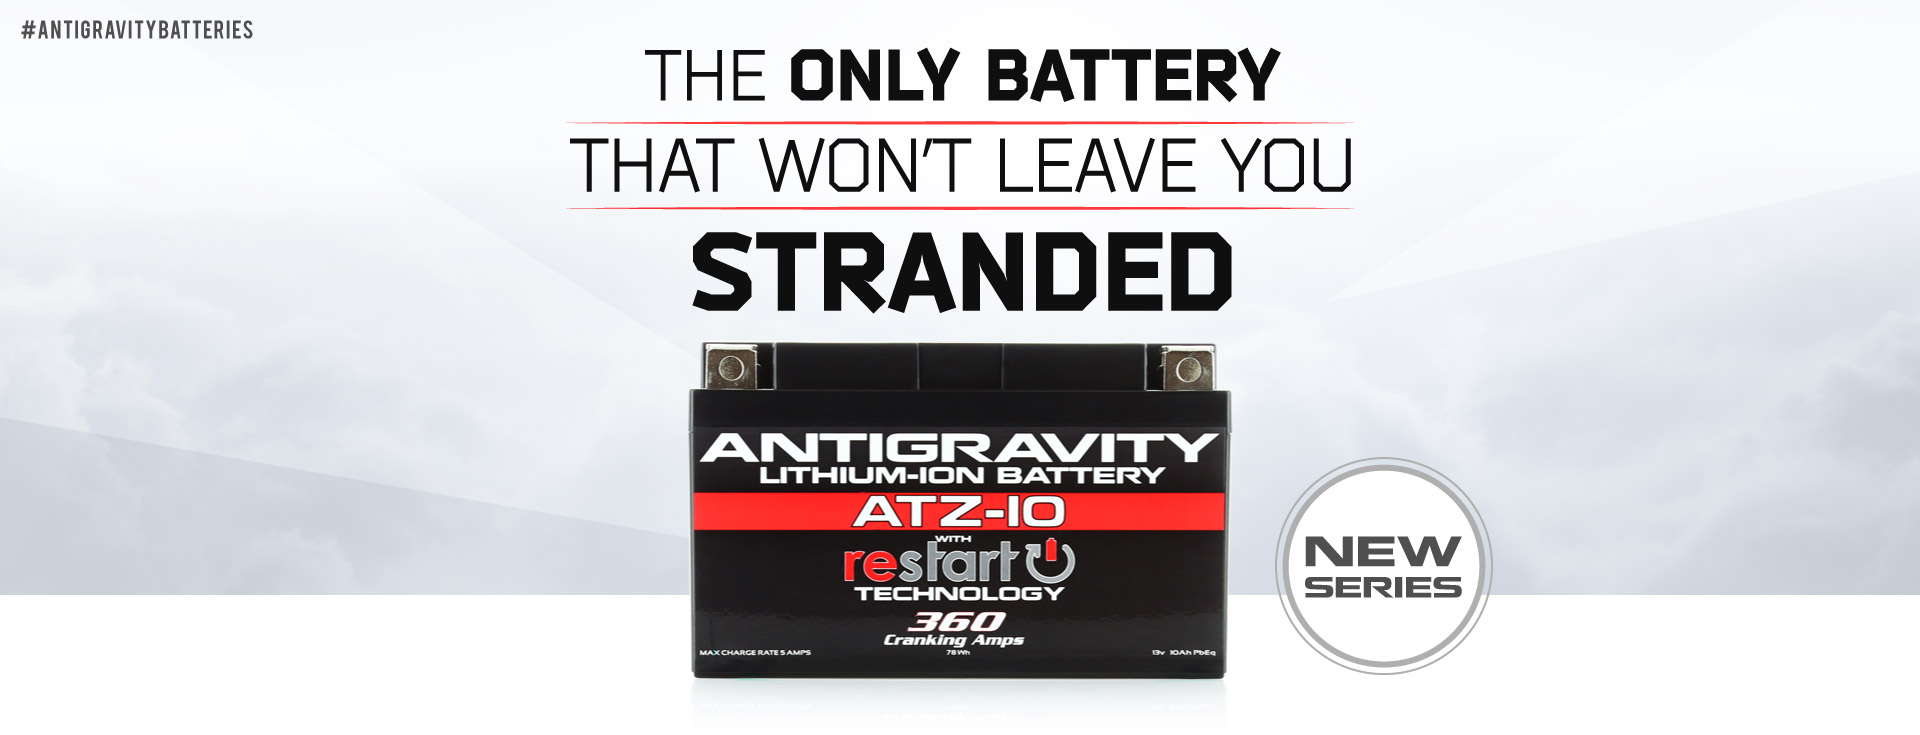 NEW Lithium RE-START Batteries by Antigravity